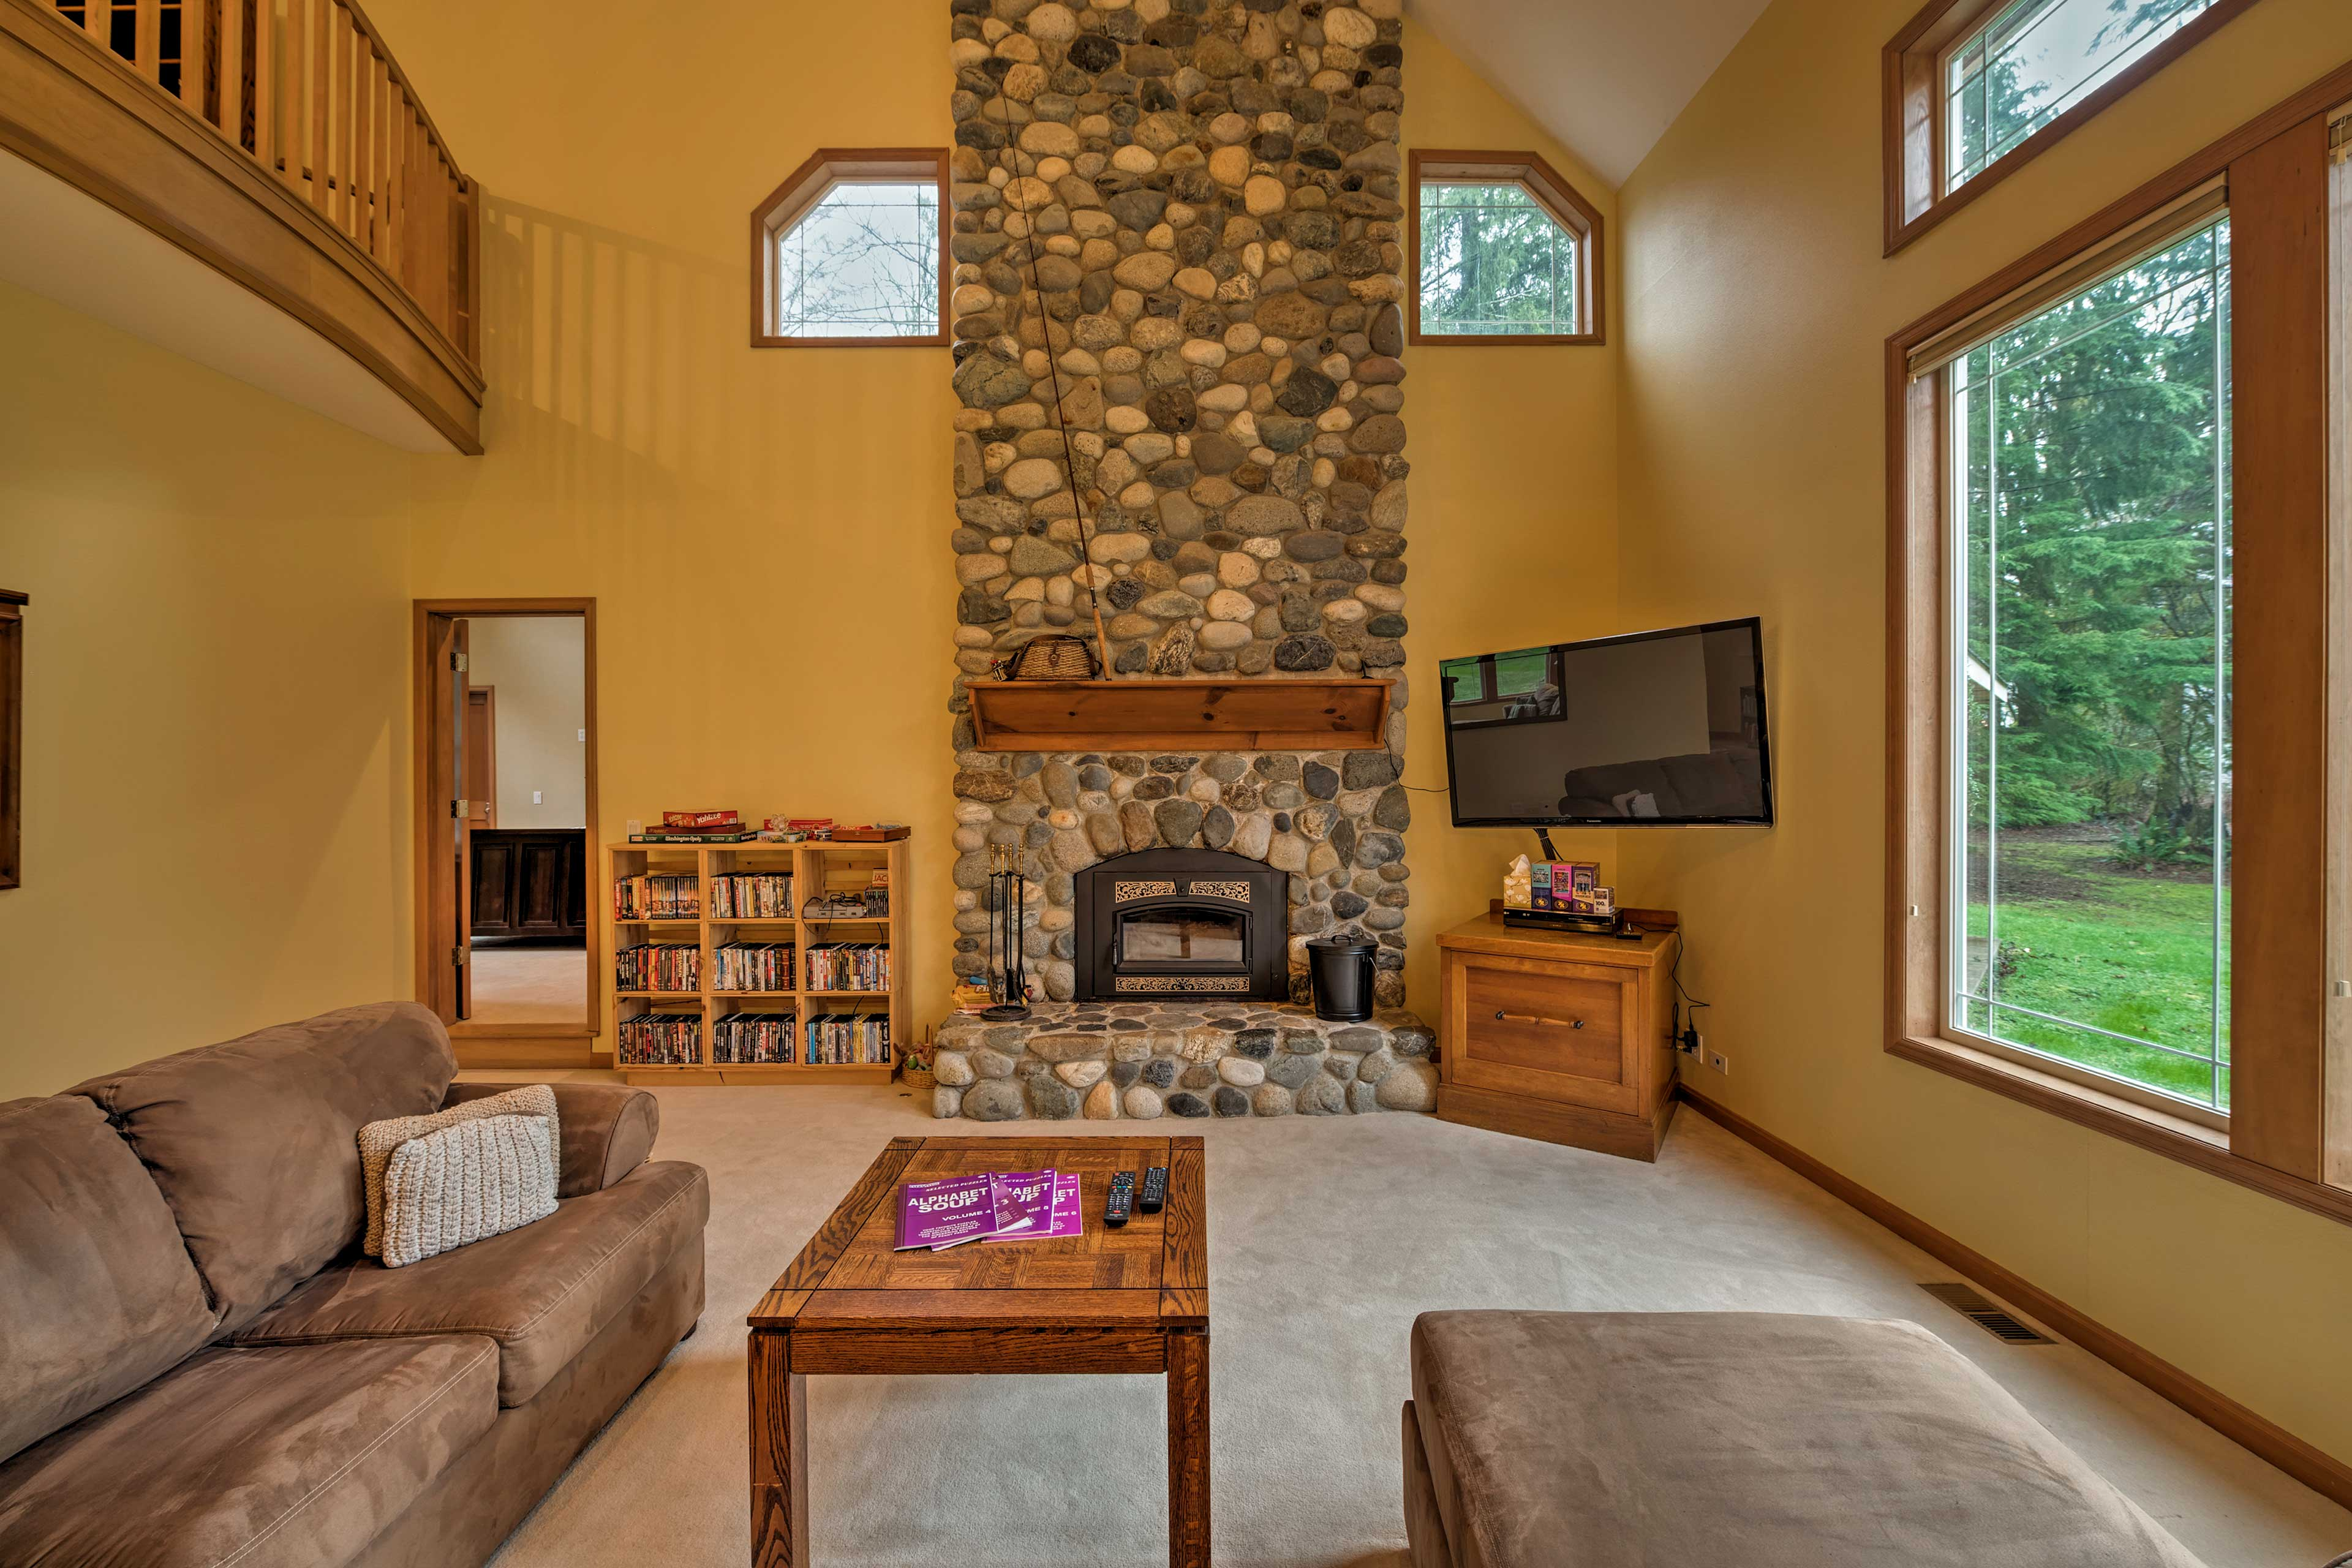 Lounge in the open living room as you warm your toes by the fire.